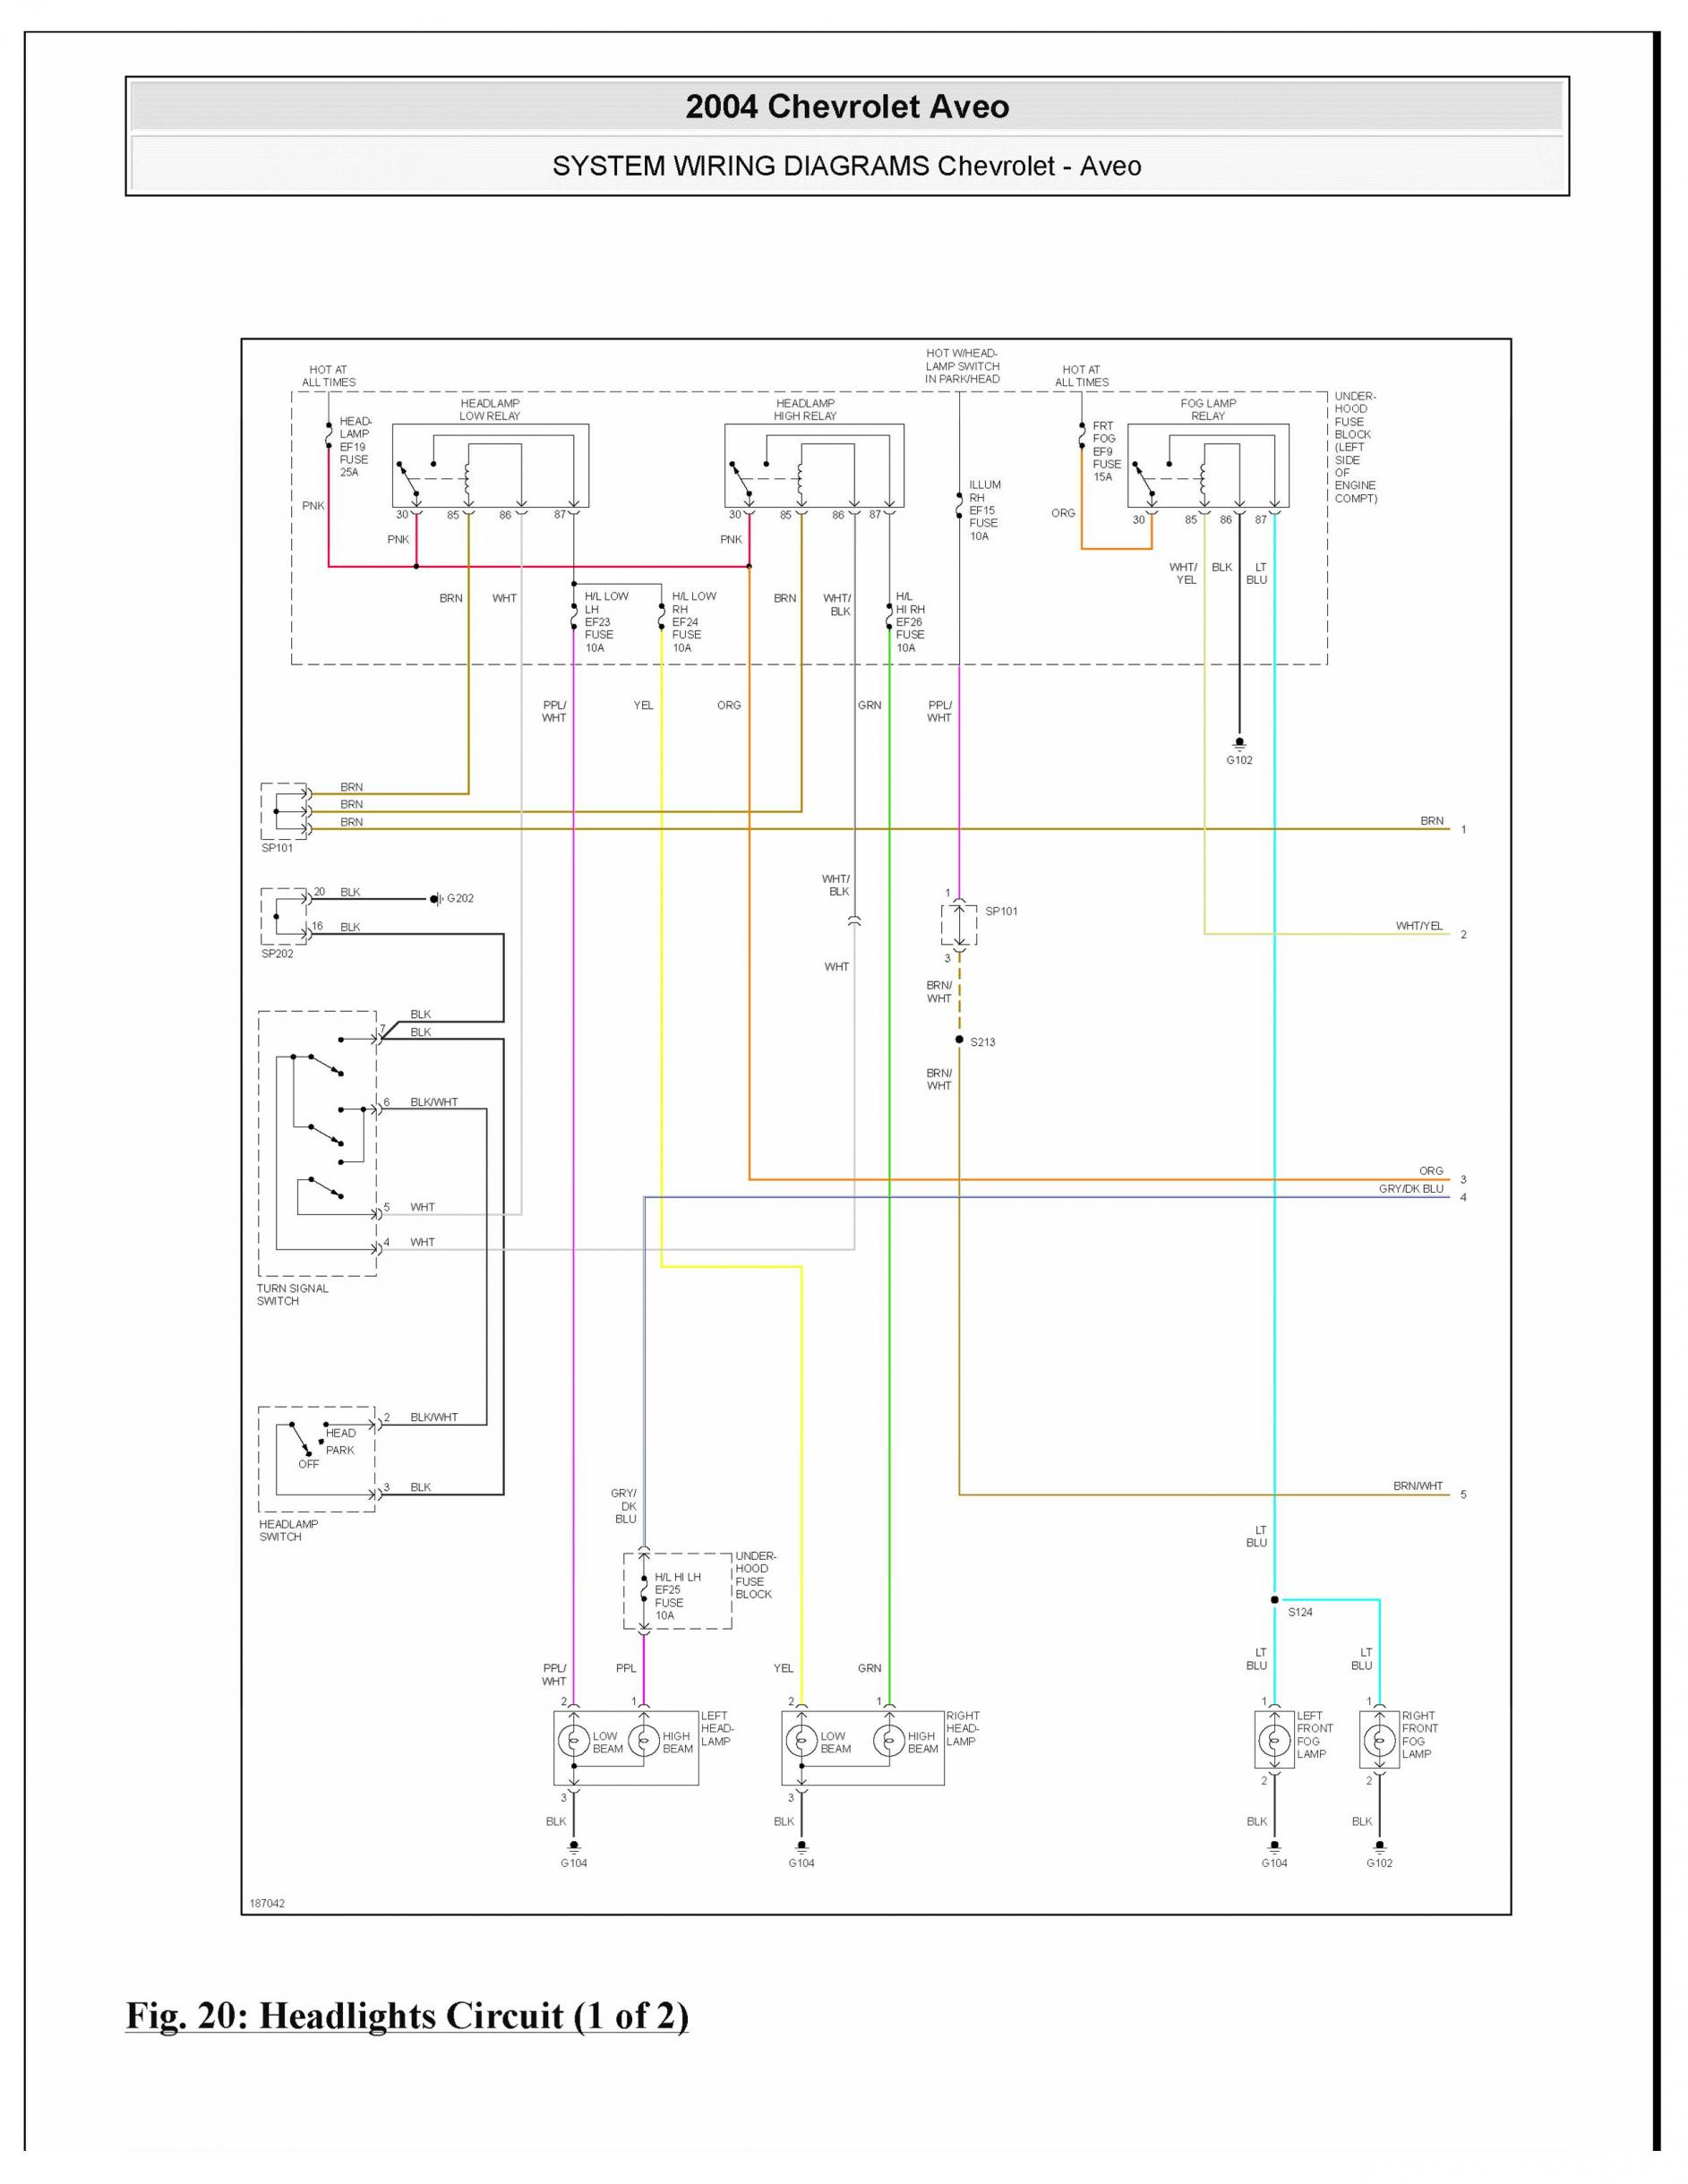 2007 Chevy Aveo Light Wiring Diagram Expert Diagrams 2005 Impala Headlight No Headlights Can Find A